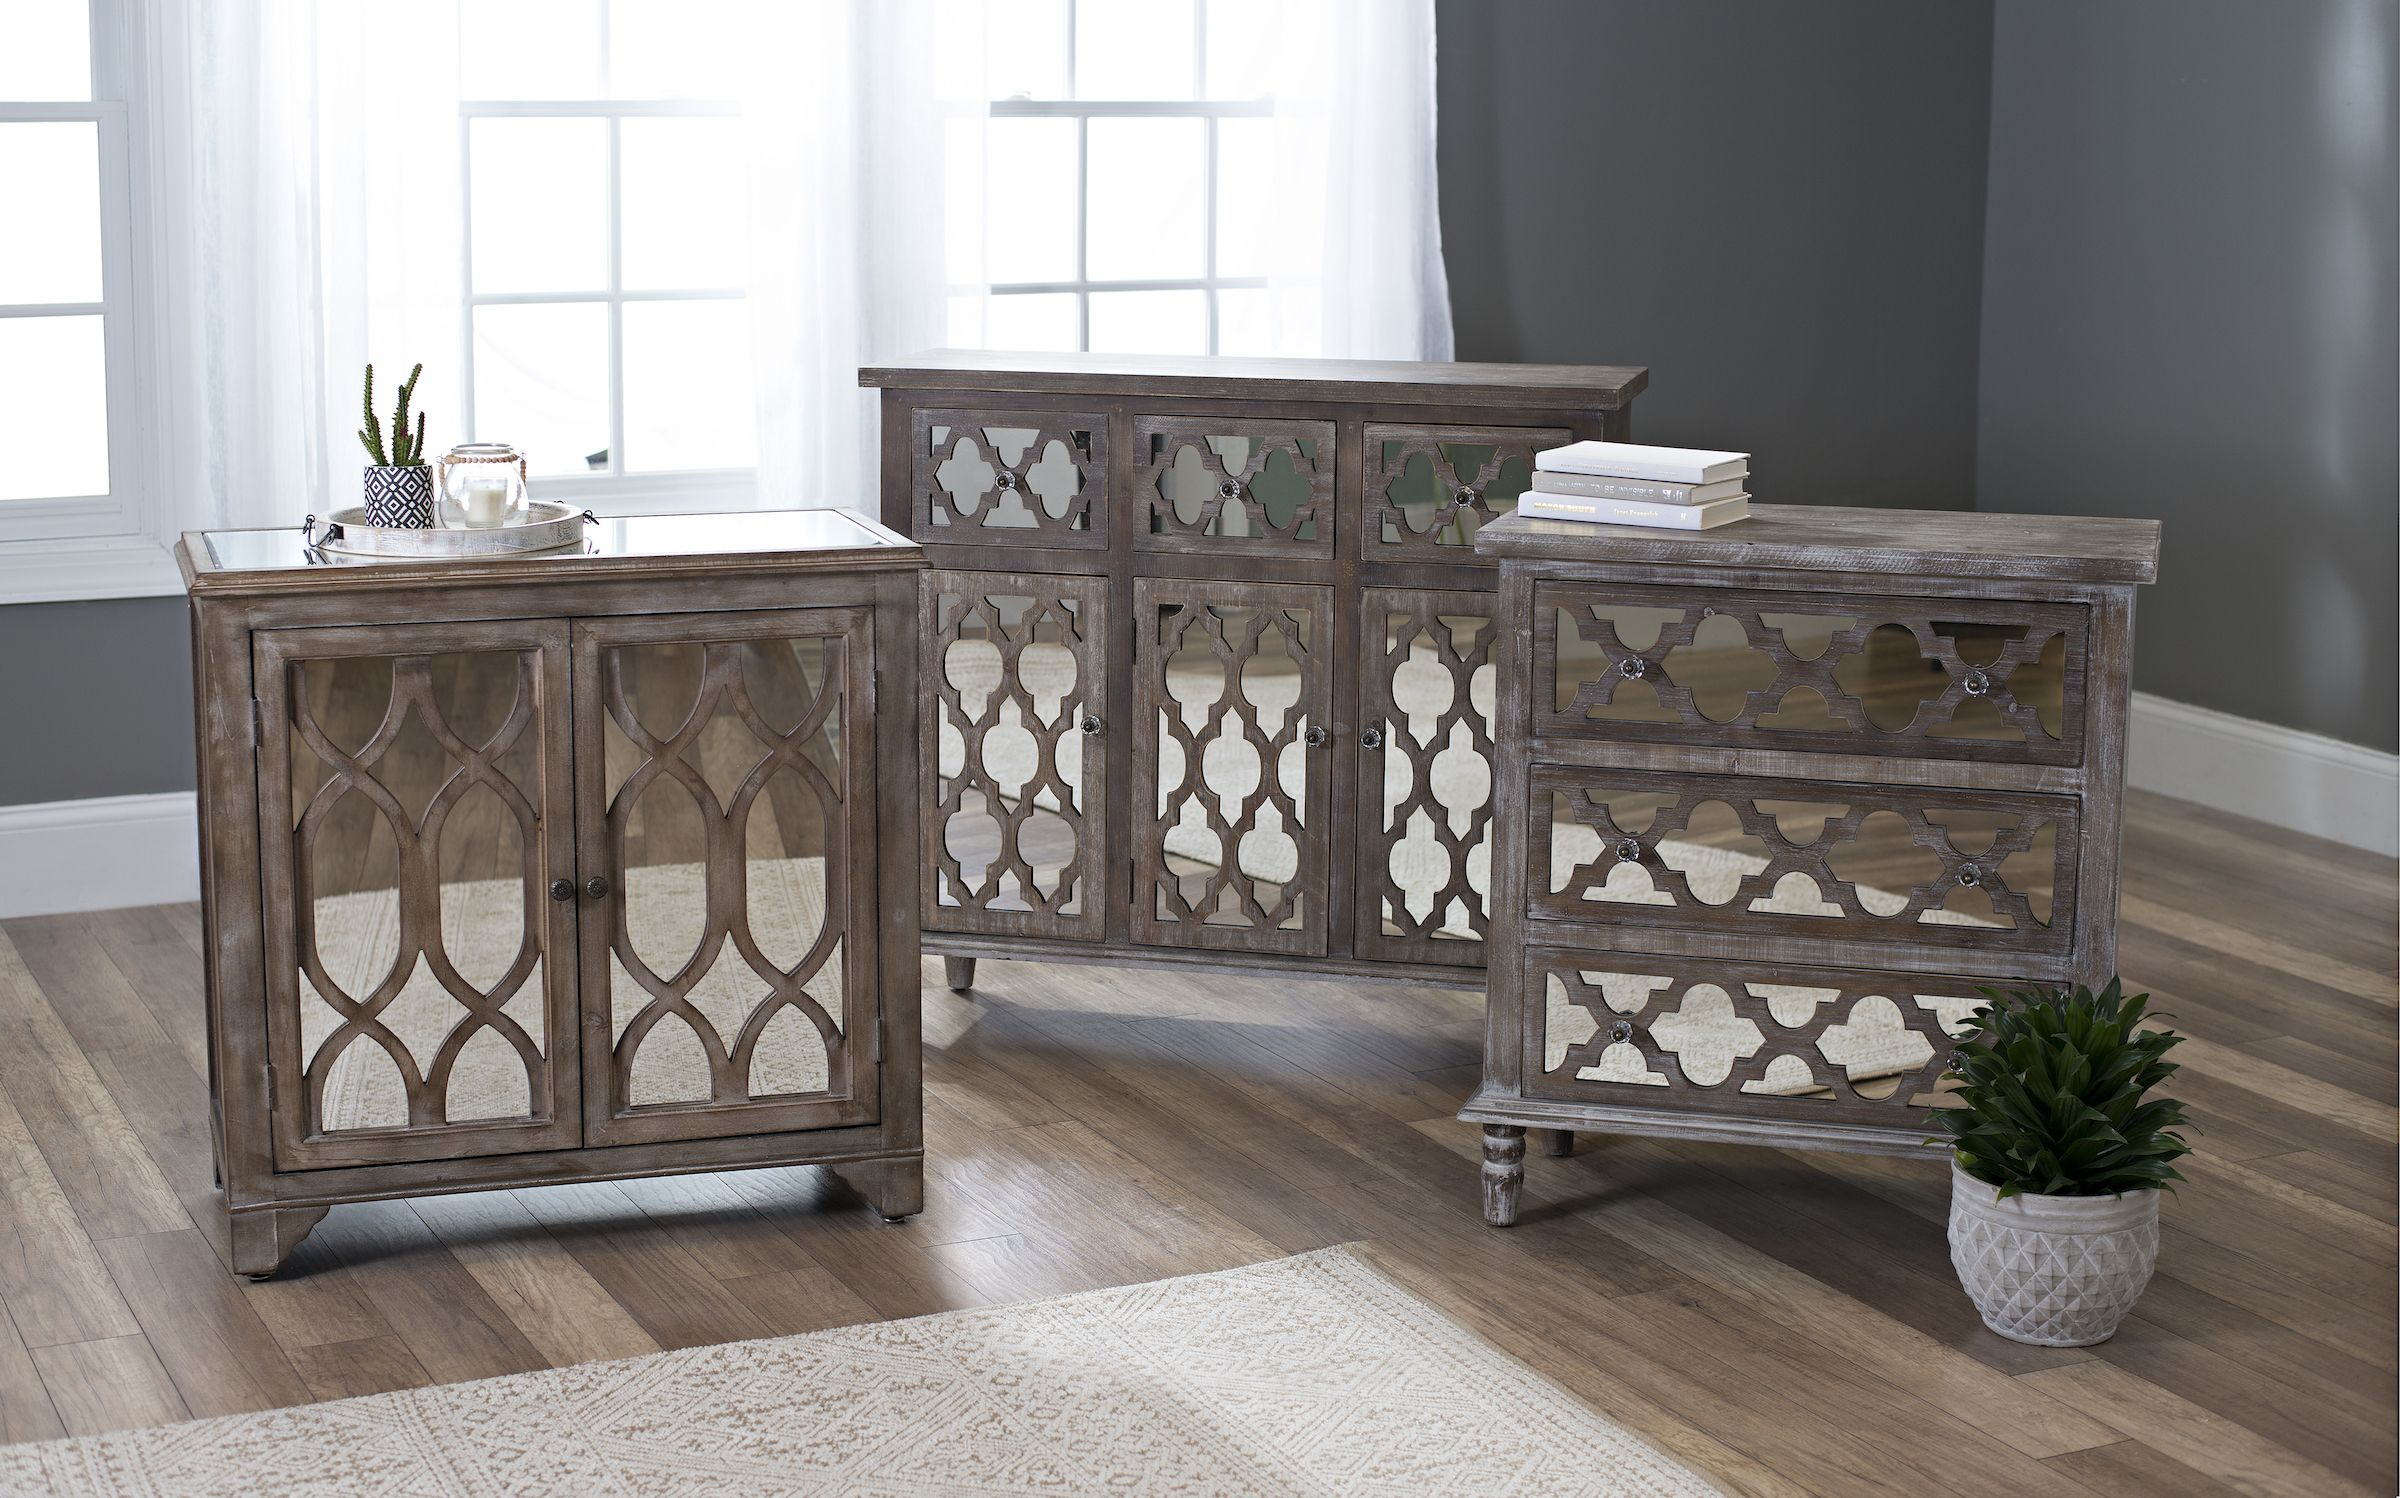 Shop our collection of mirrored furniture on sale now